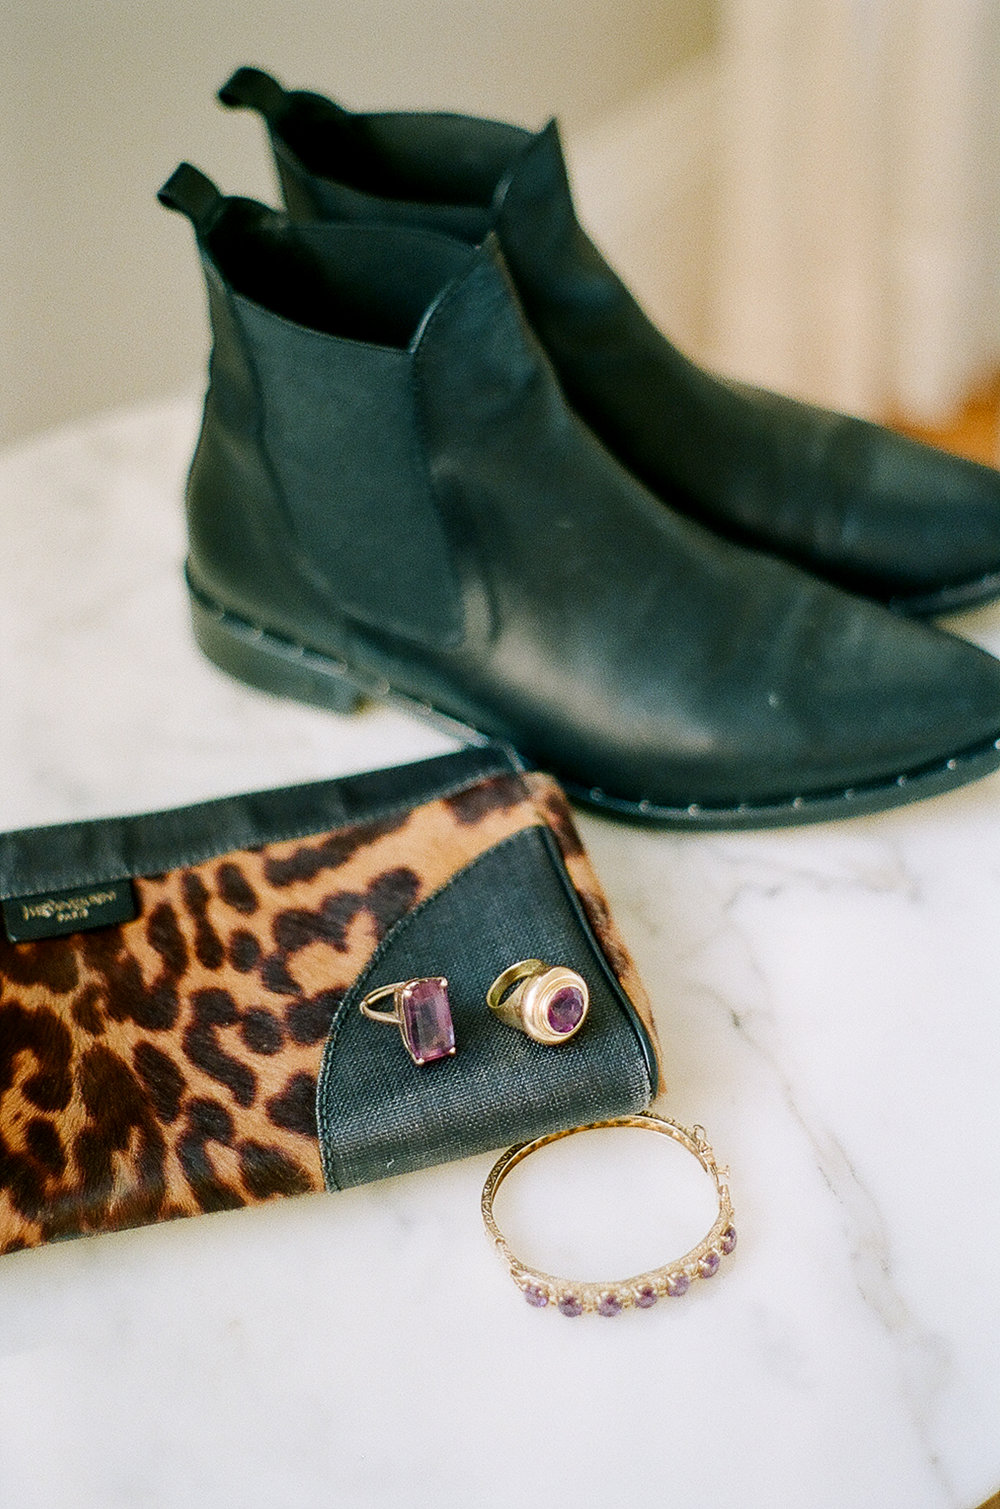 A few more of Lauren's vintage jewels, plus some favorite boots from our friends at  Freda Salvador .